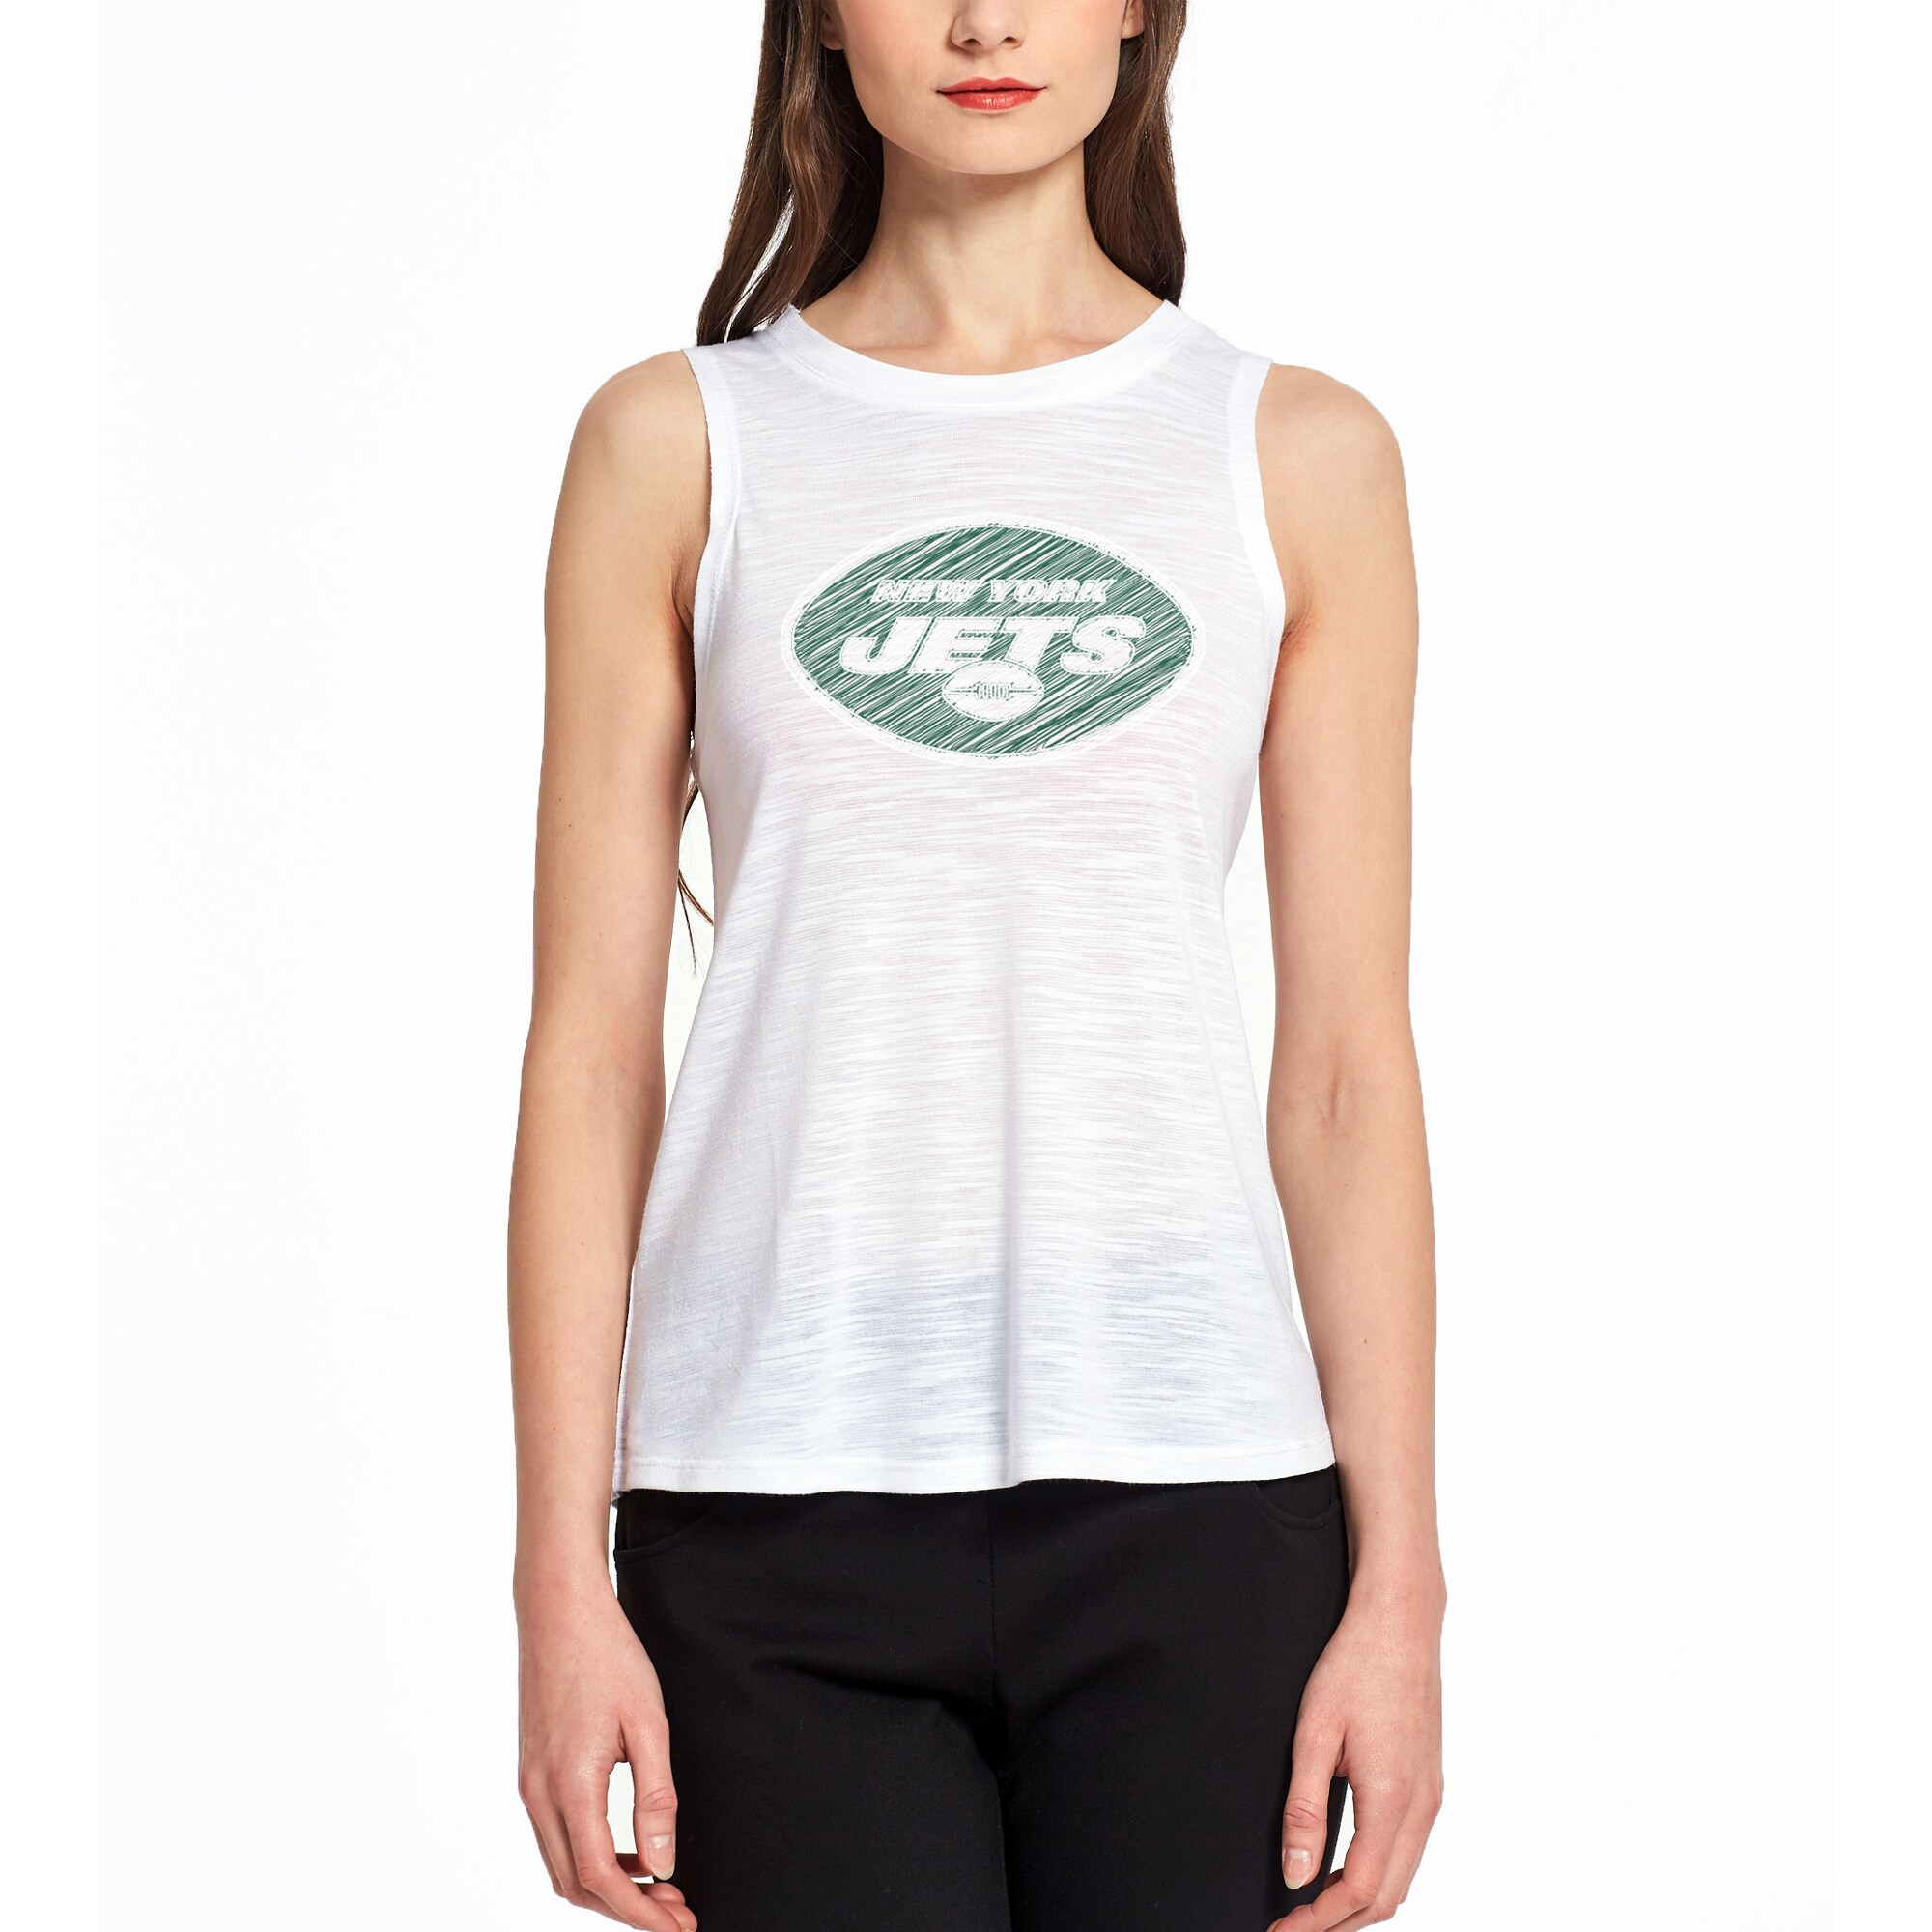 New York Jets Concepts Sport Women's Infuse Knit Tank Top - White